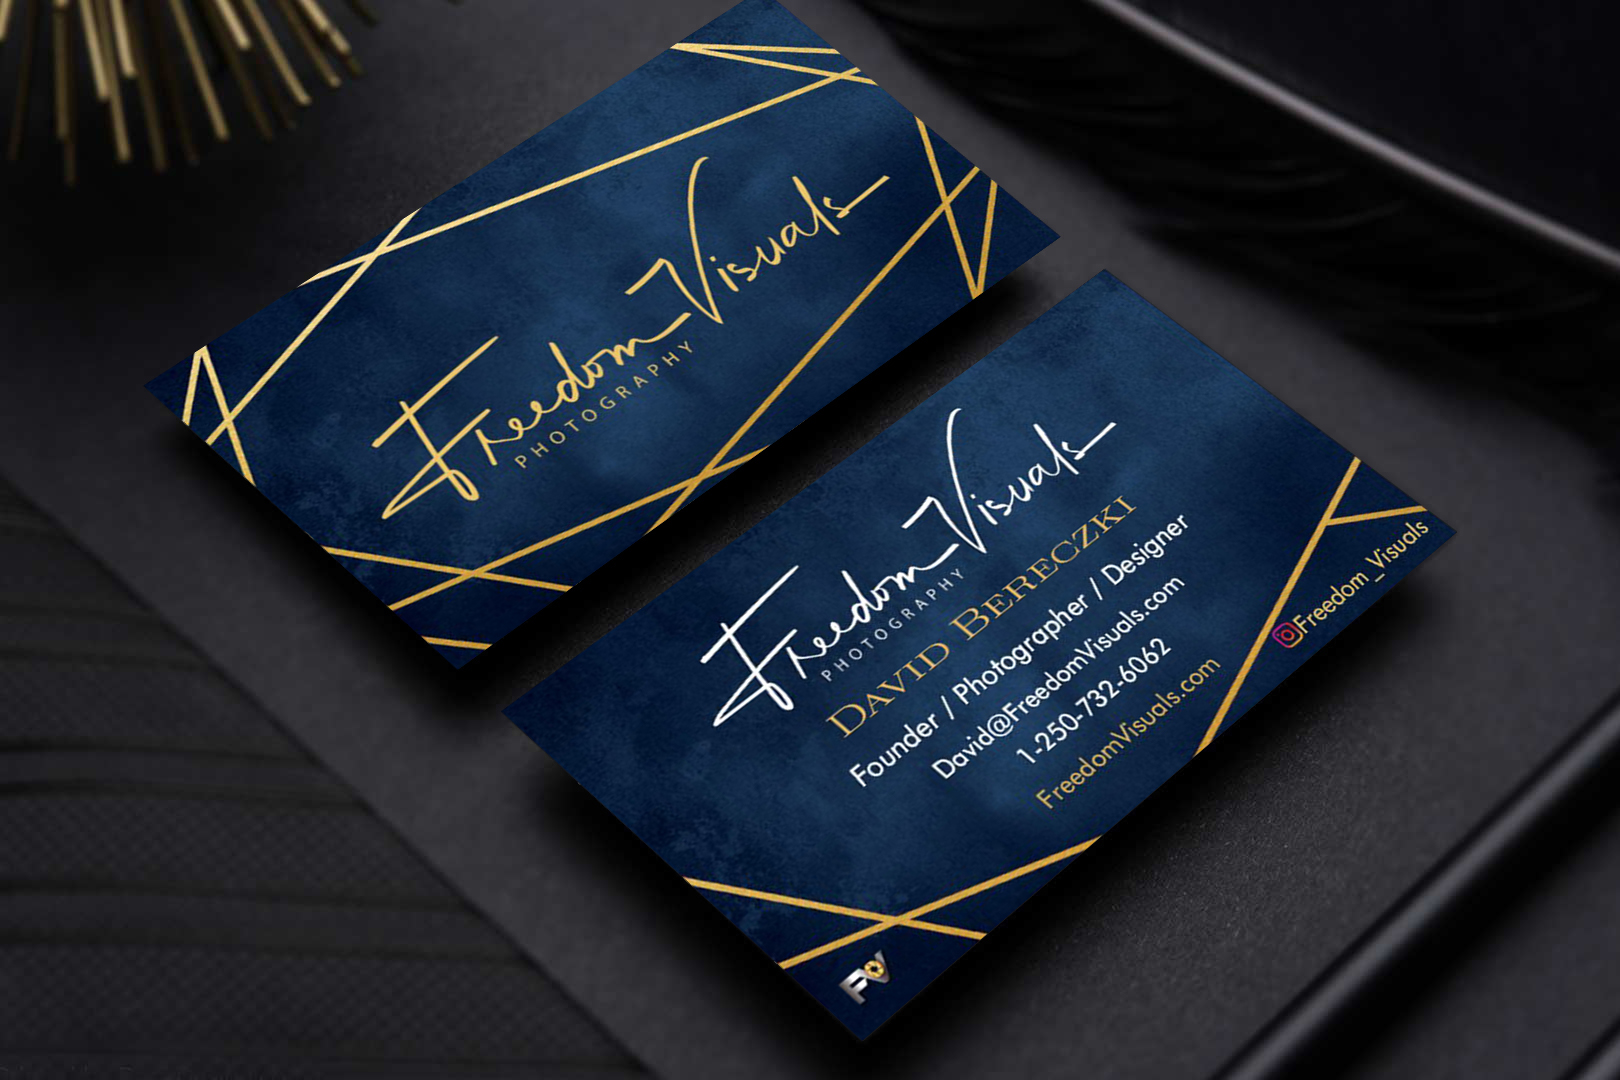 FV Business Card Mock Up - Front and Bac